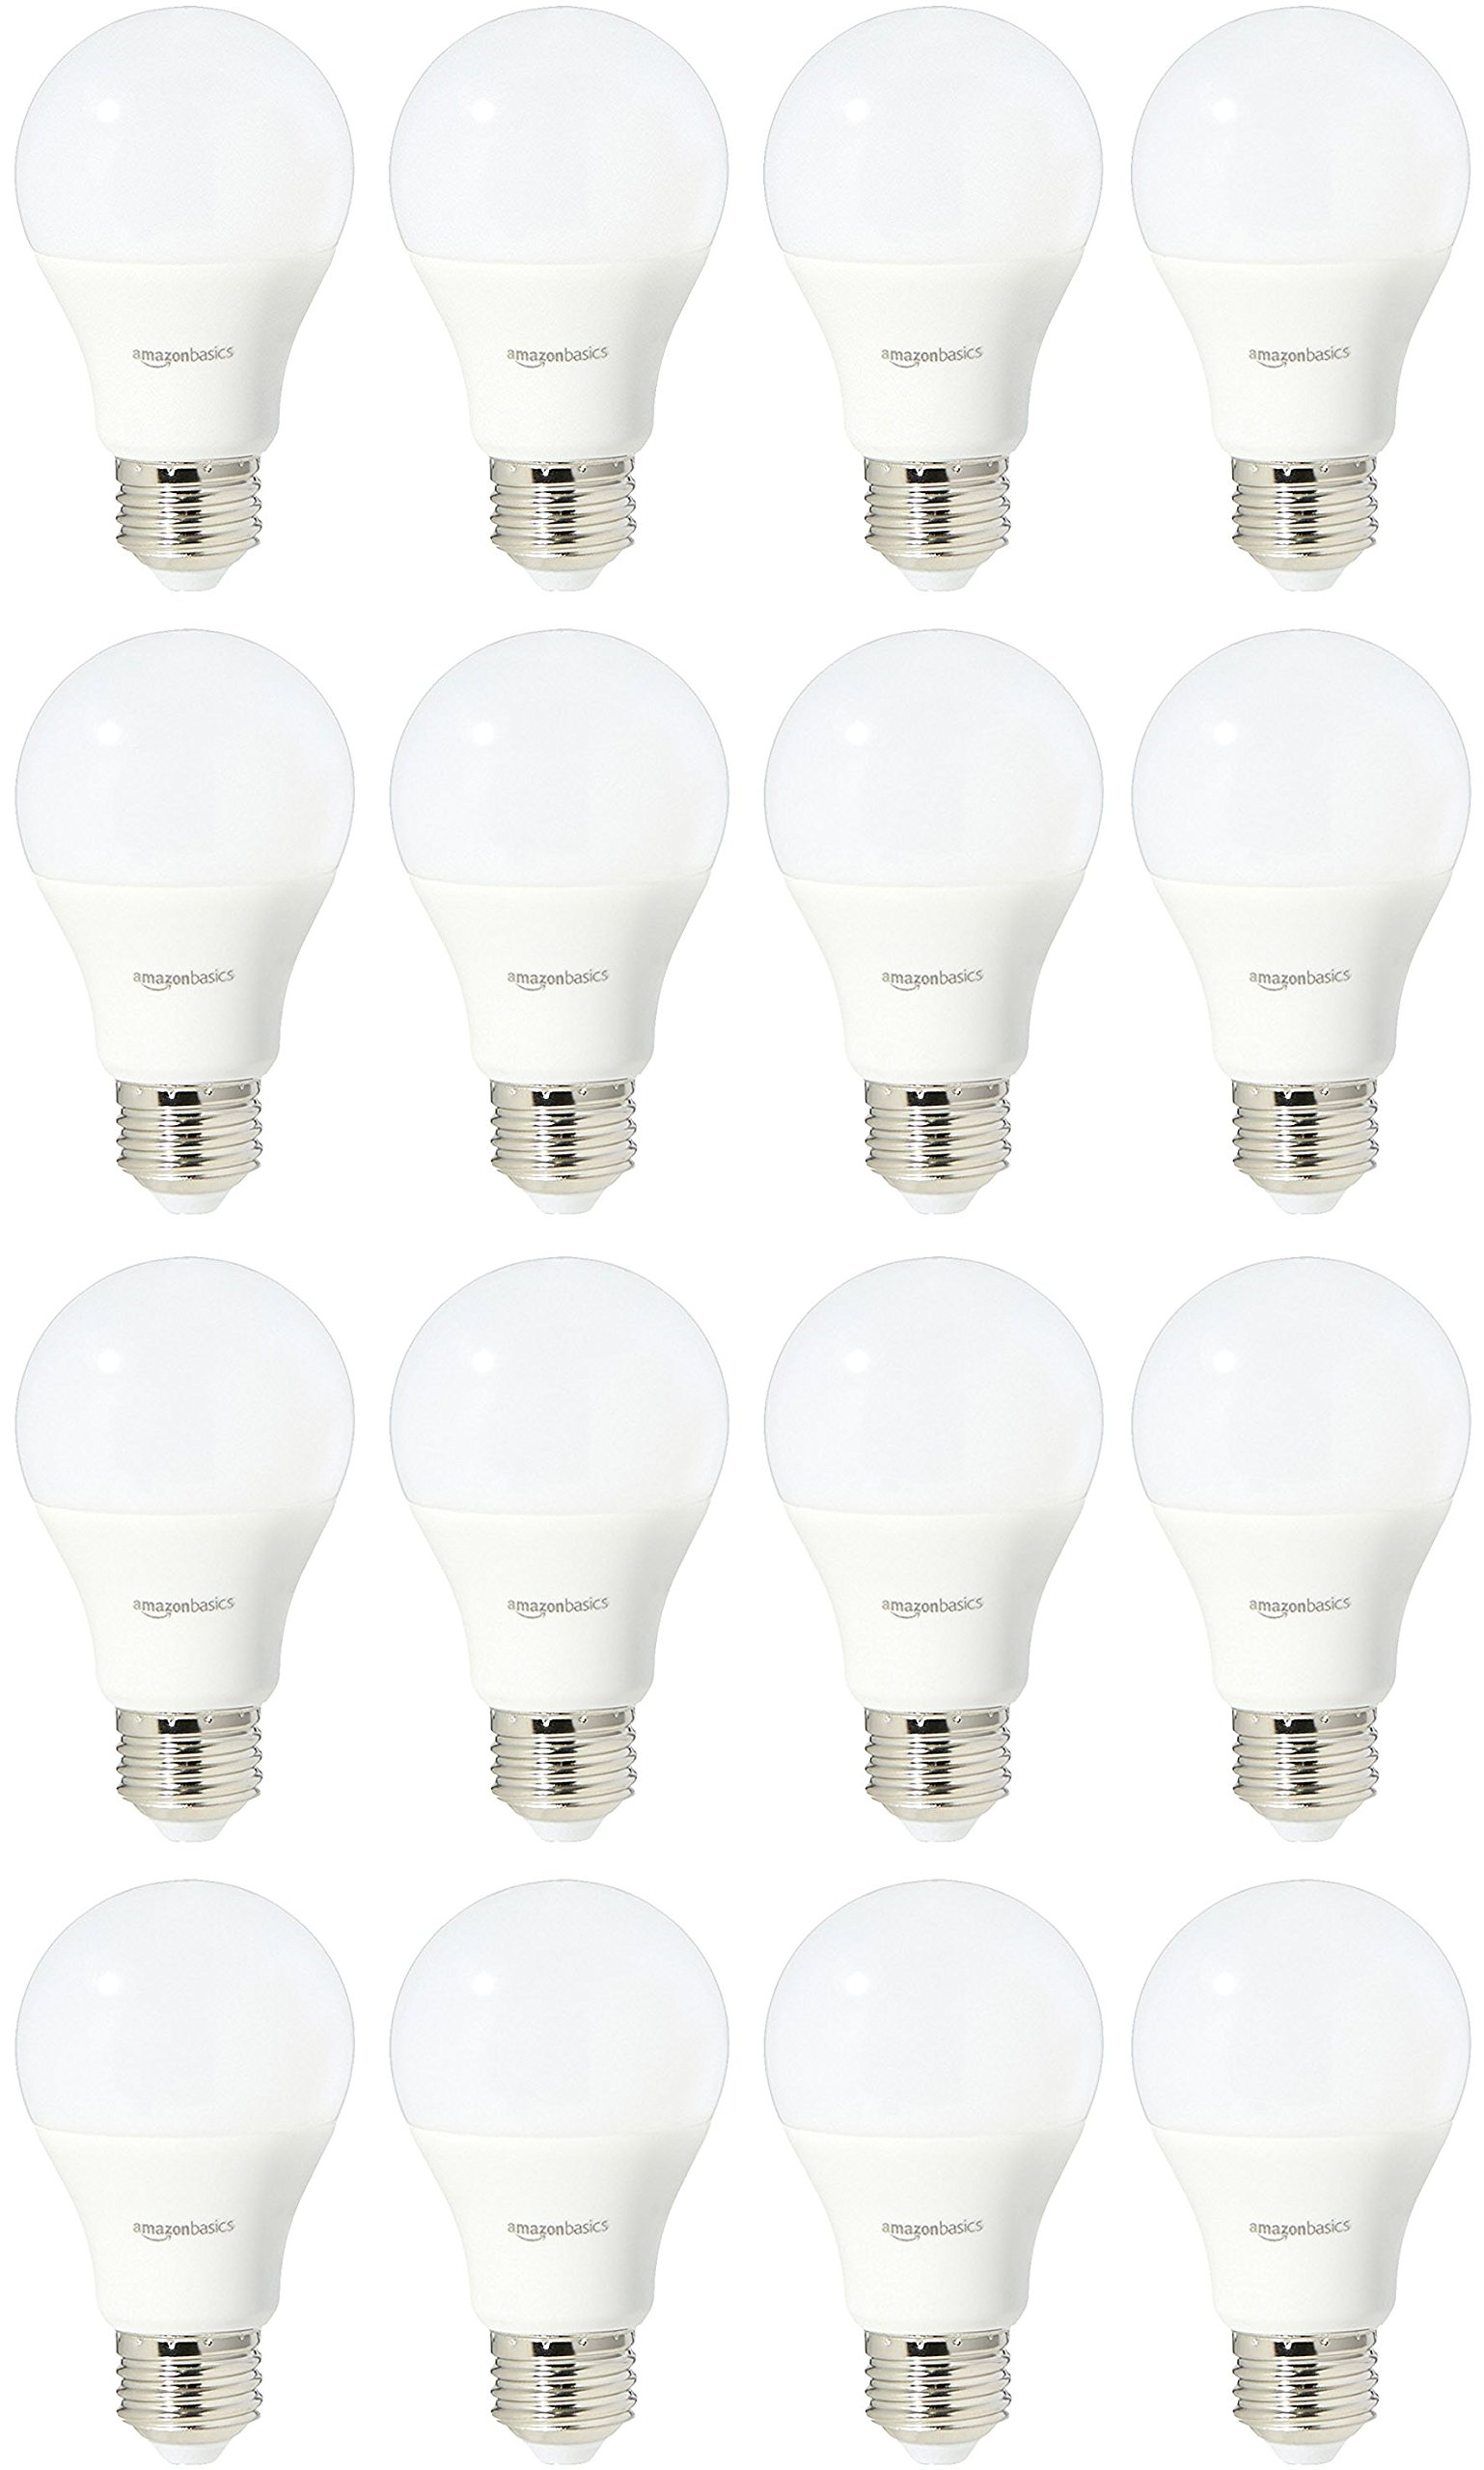 AmazonBasics 60 Watt 15,000 Hours Non-Dimmable 800 Lumens LED Light Bulb - Pack of 16, Daylight